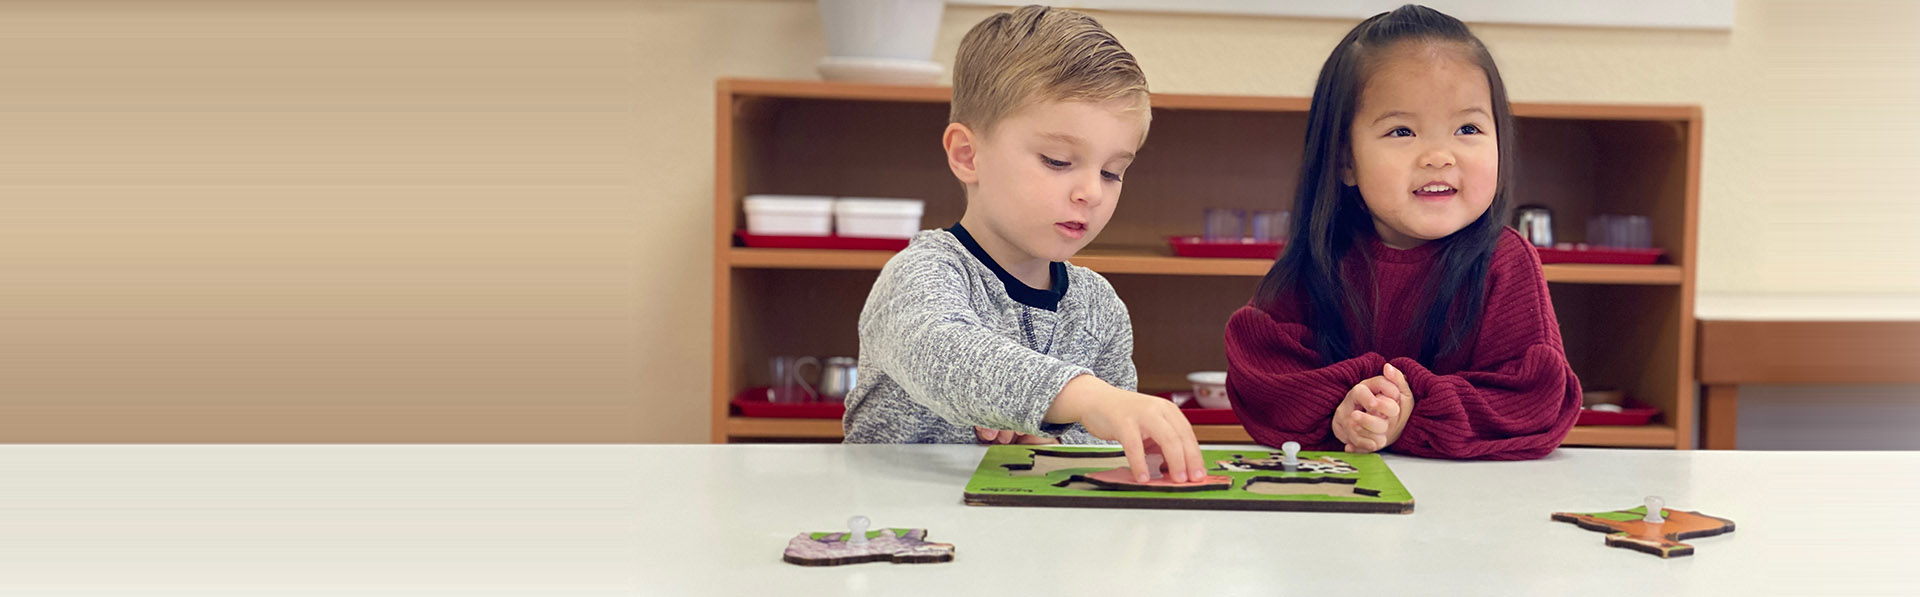 Montessori School Toddler, Preschool and Kindergarten Programs